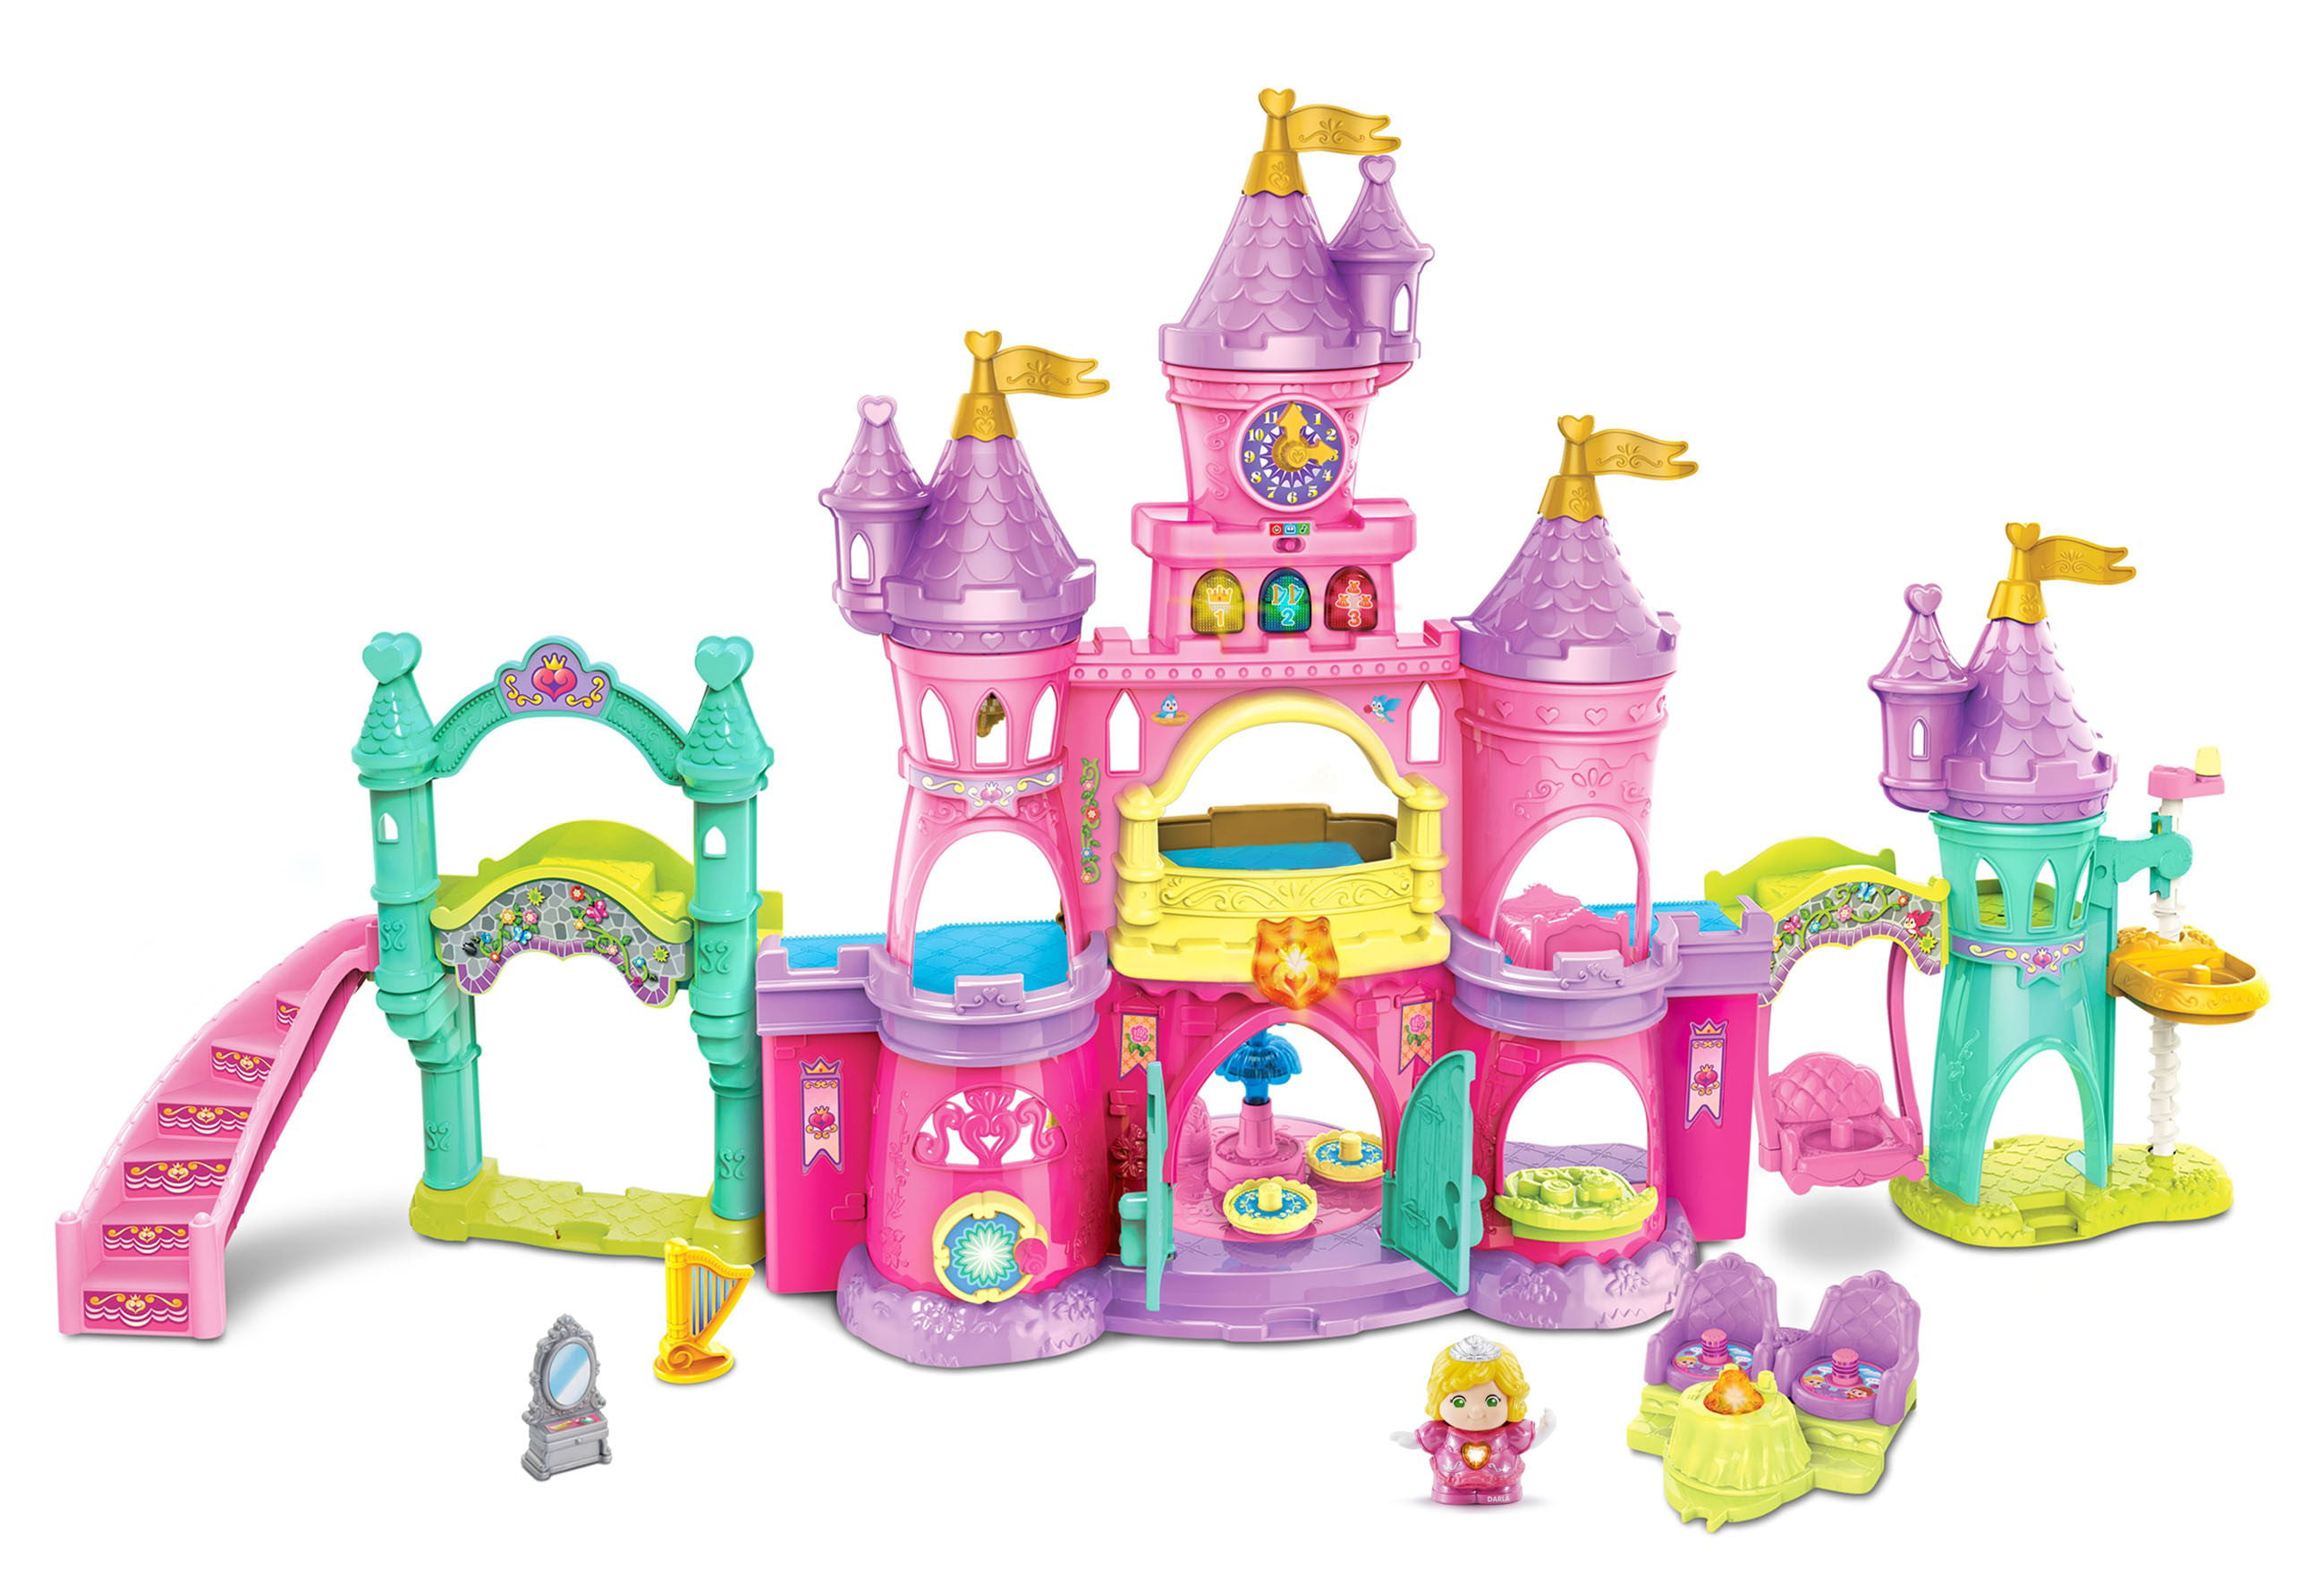 VTech Go! Go! Smart Friends Enchanted Princess Palace by VTech